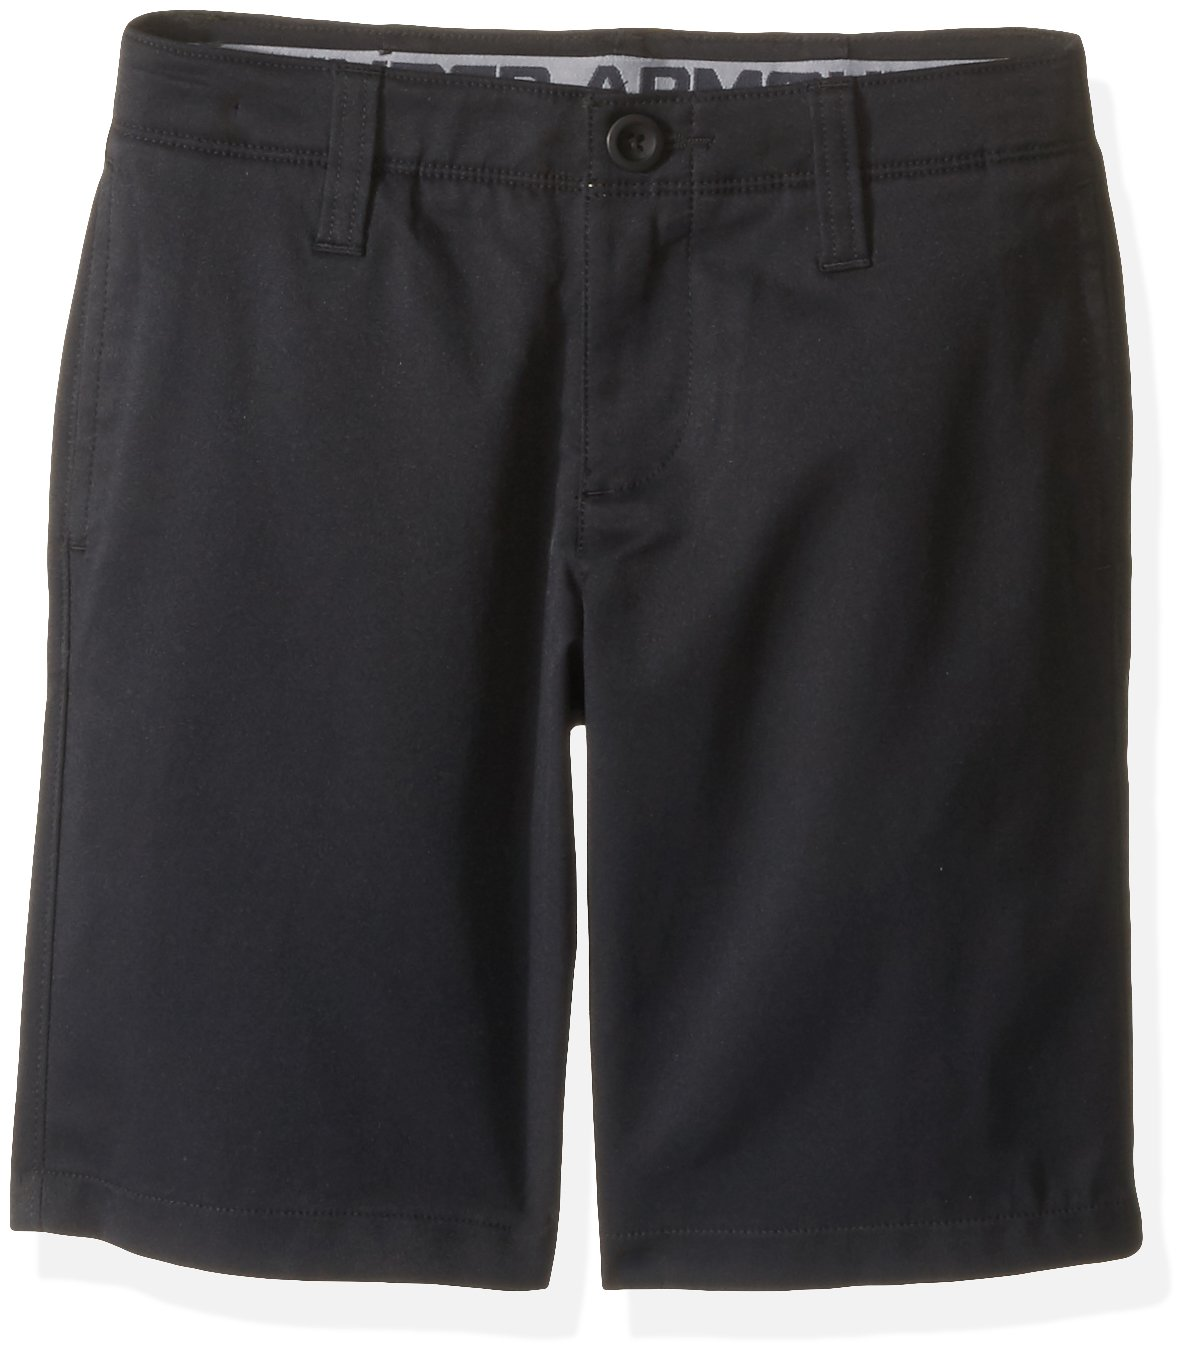 Under Armour Boys' Match Play Polo Shorts, Black/Black,20 by Under Armour